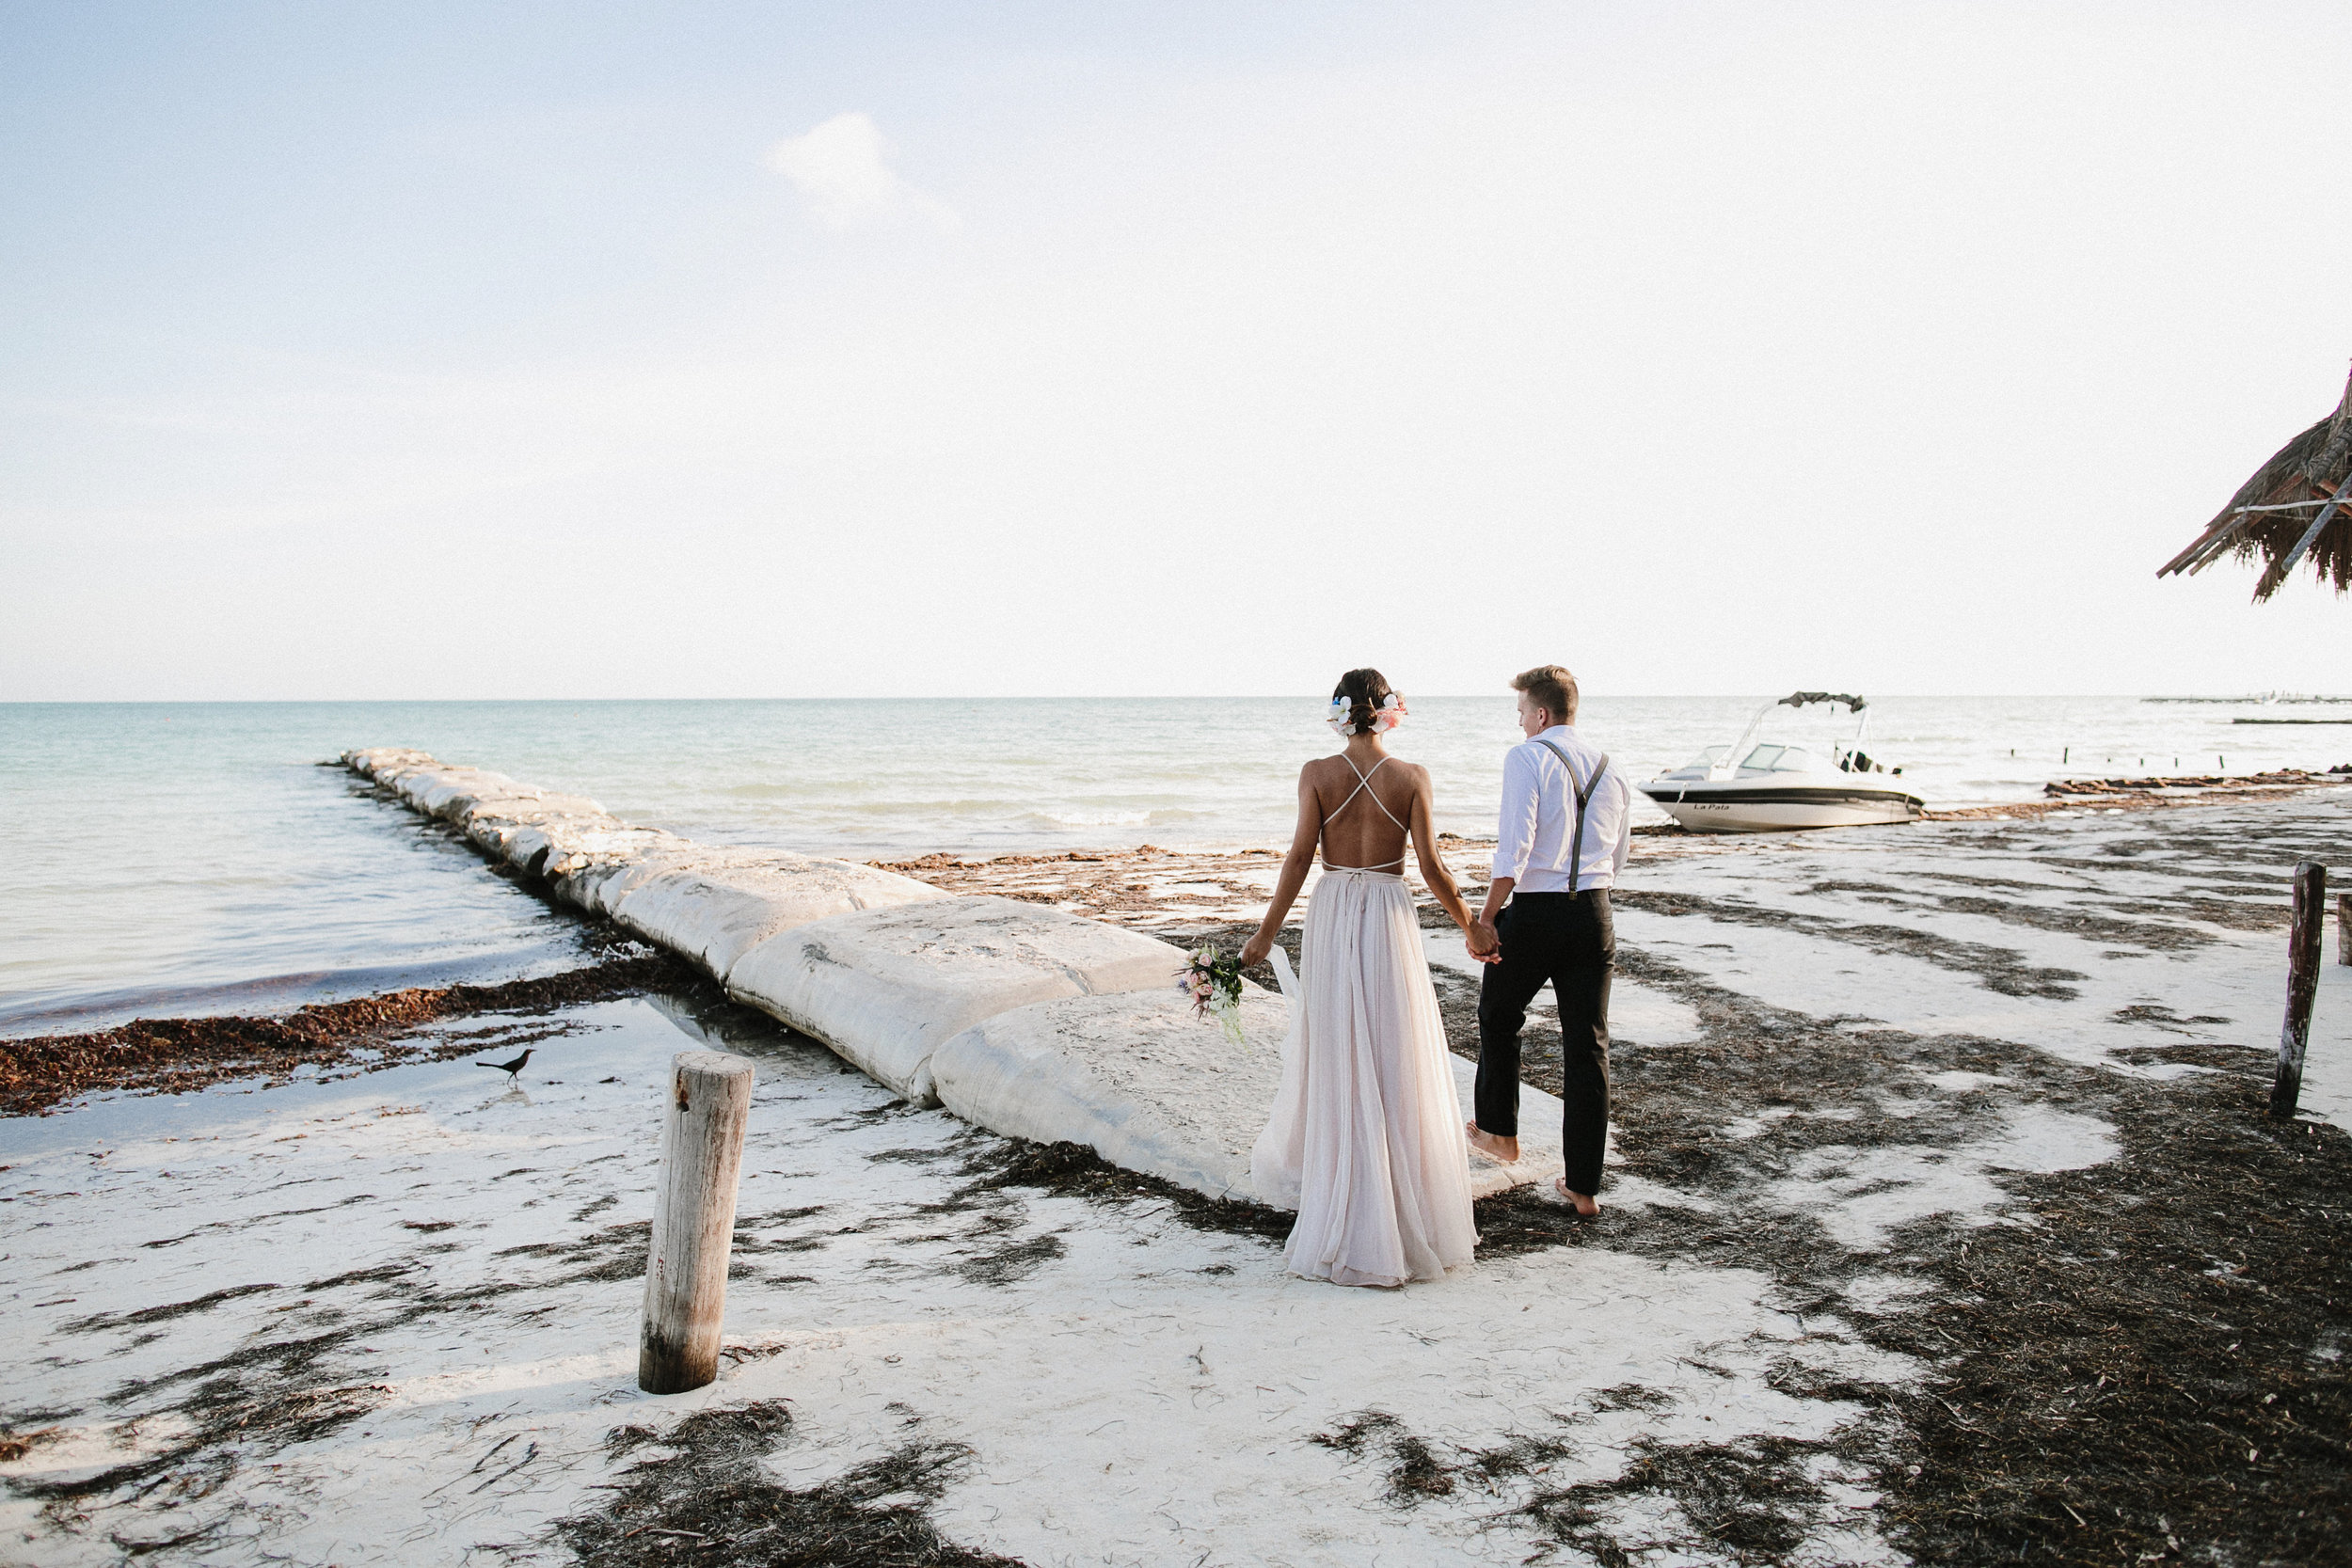 alfonso_flores_destination_wedding_photographer_holbox_nomada_workshop-203.jpg